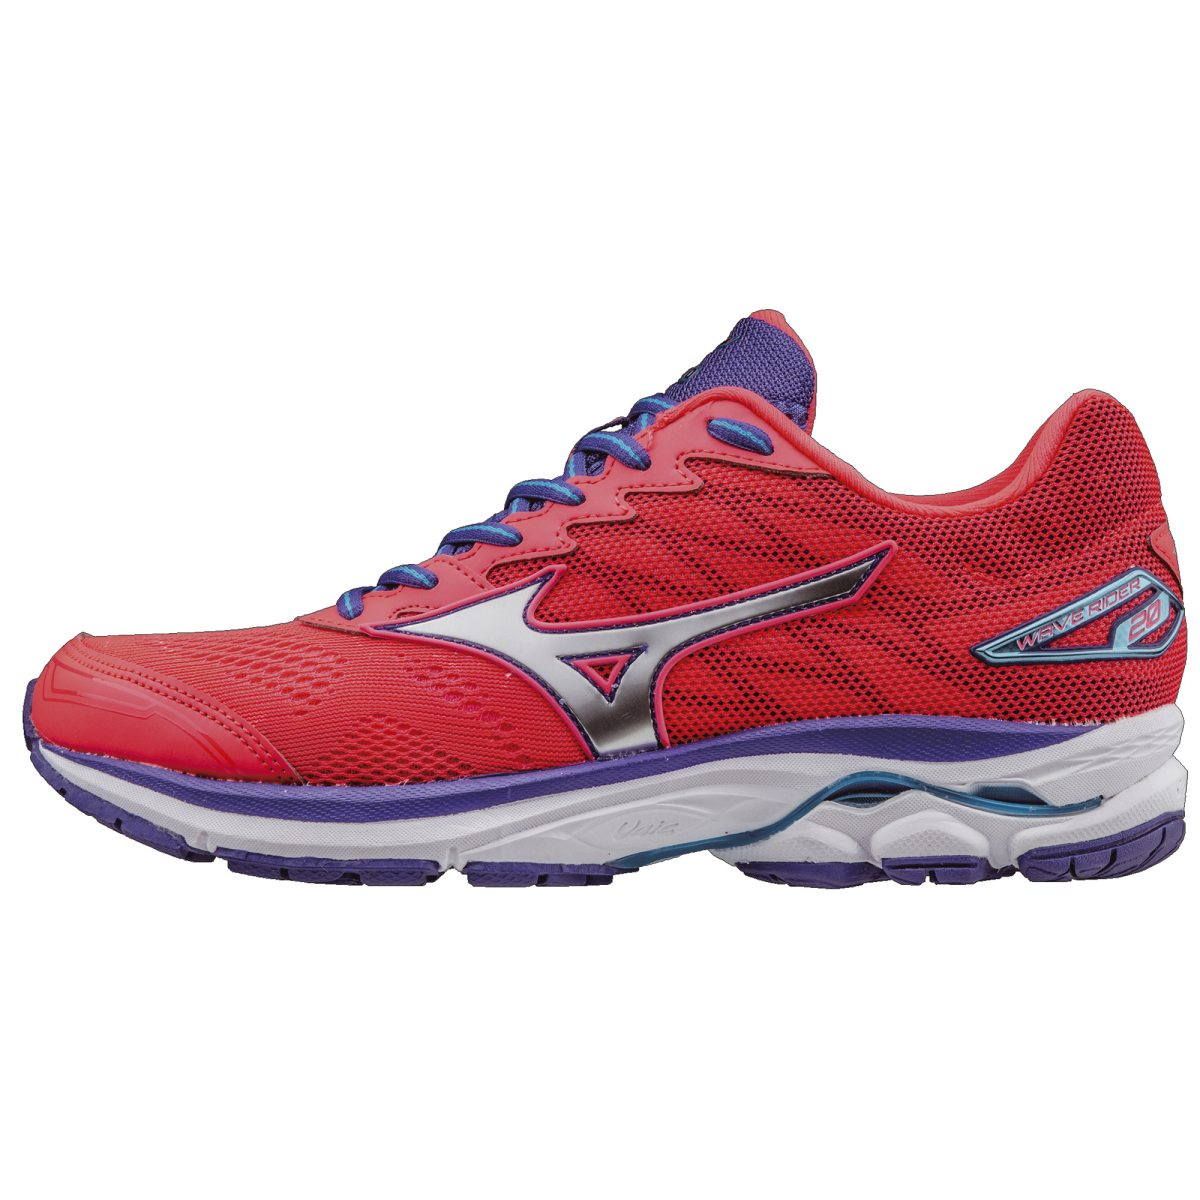 low priced 088a1 fcc83 ... get nike zoom winflo 3 mennns løping sko x10 shoessale 17155 f5fb4 ...